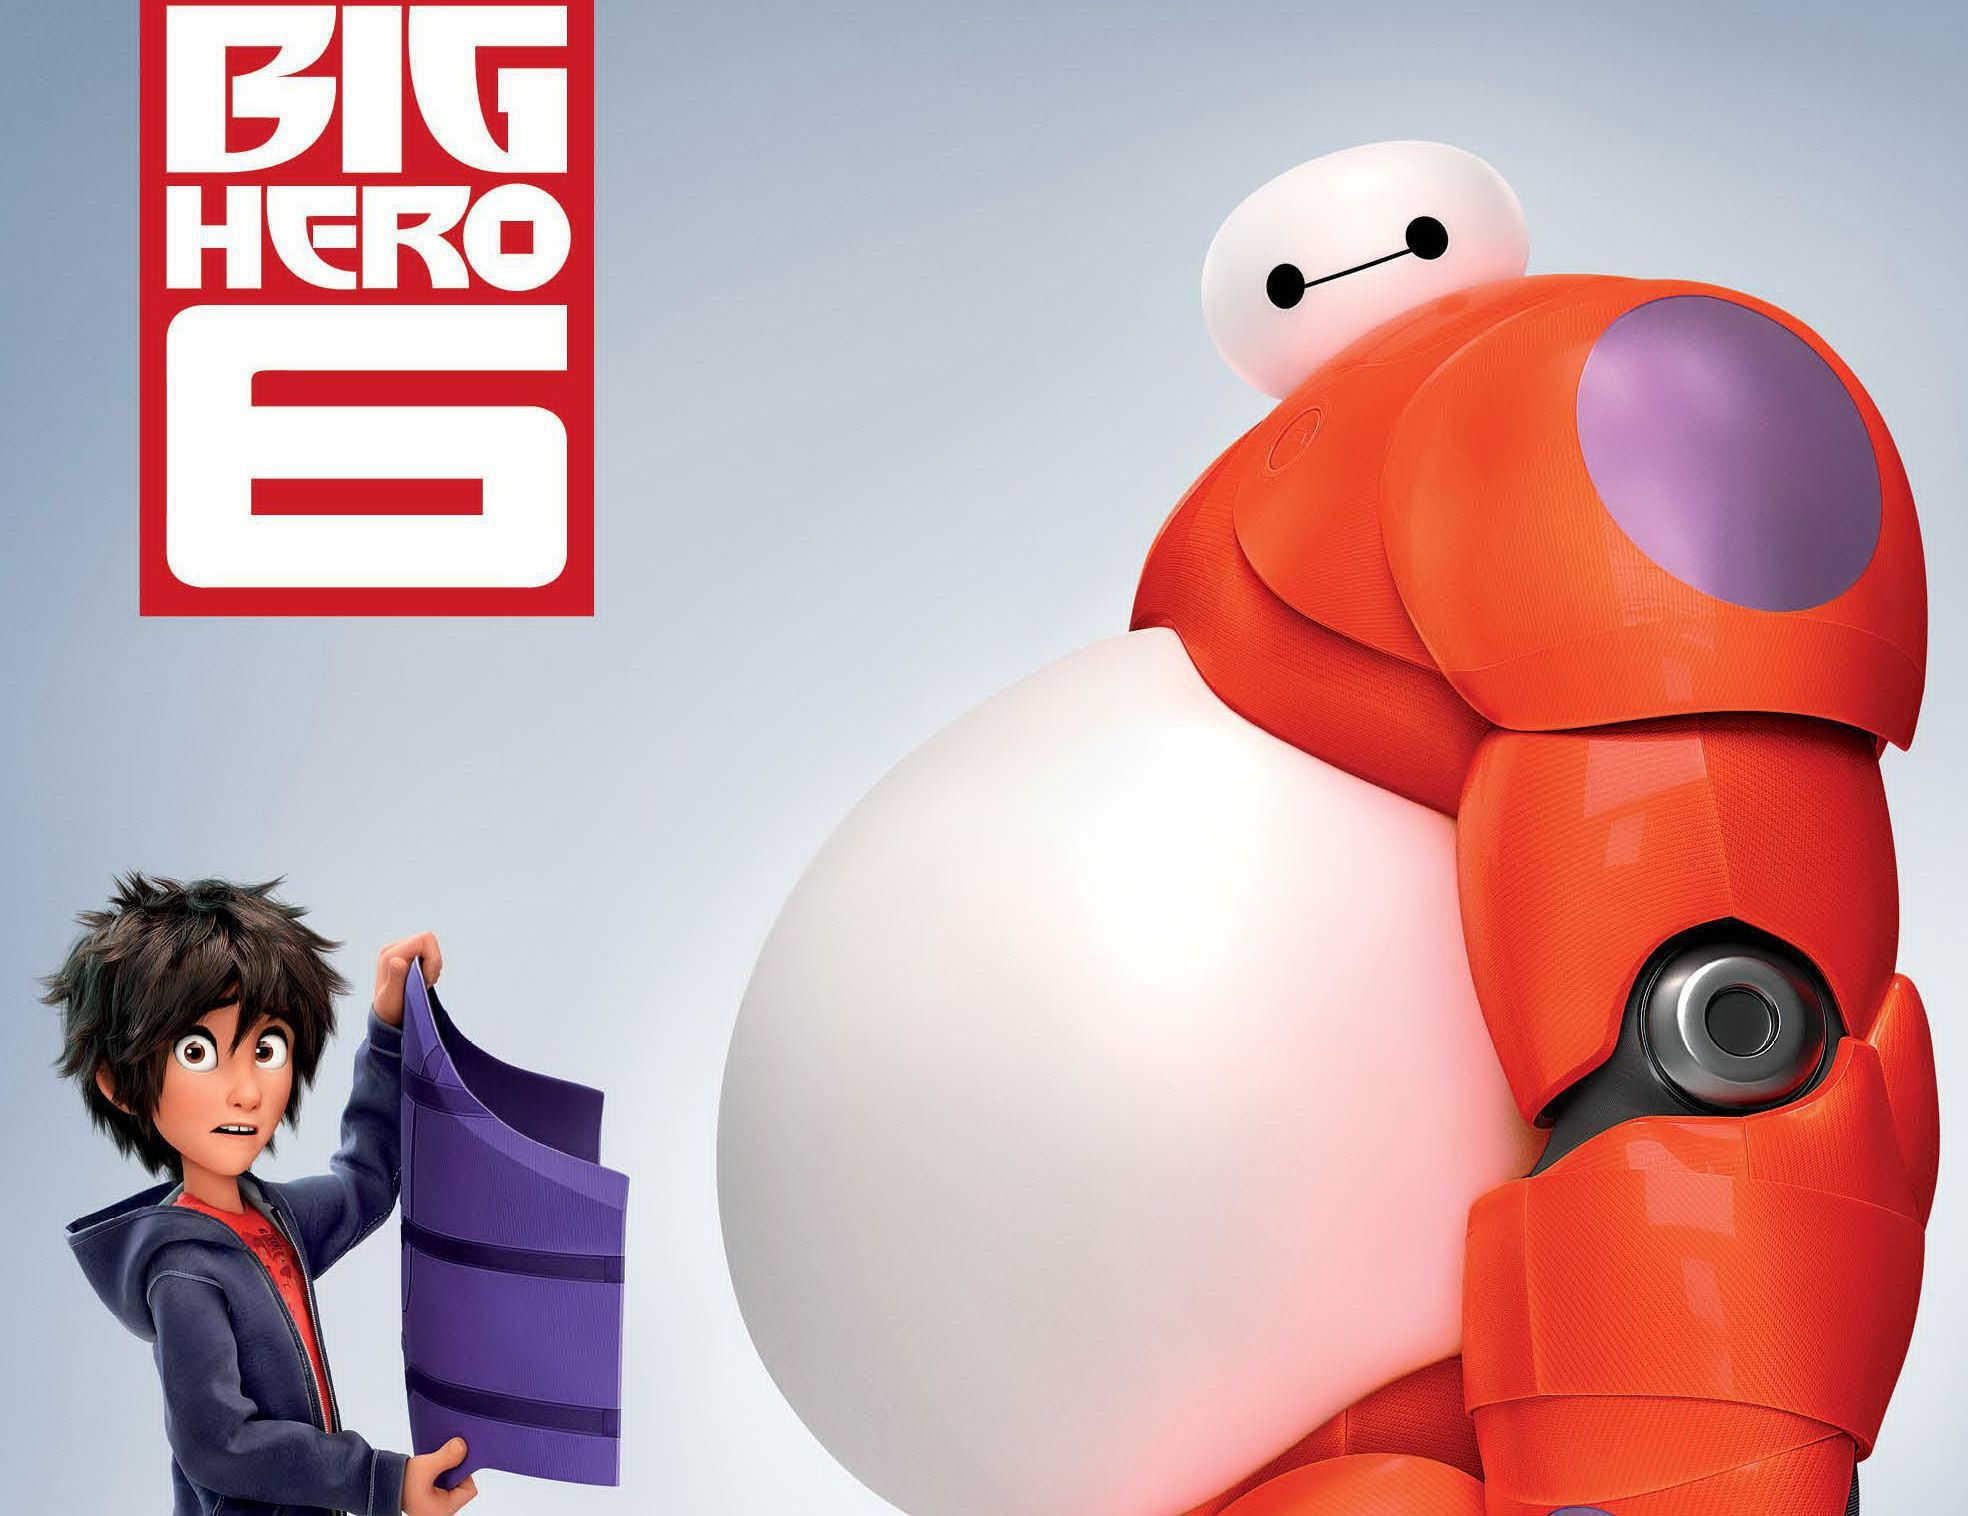 Big Hero 6 Disney Computer Wallpaper